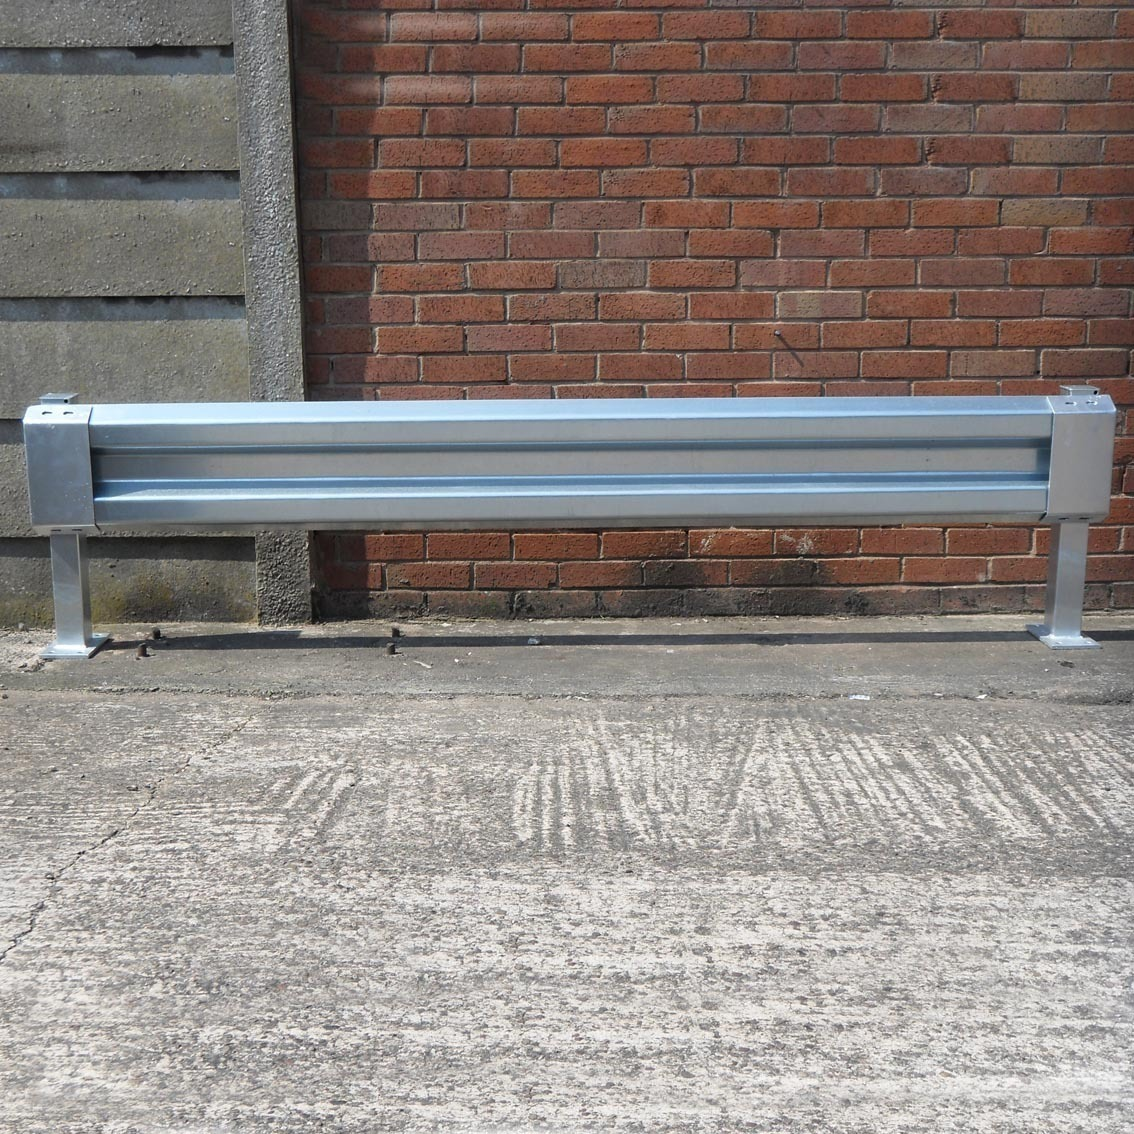 Sectional_steel_barrier_with_pedestrian_friendly_ends